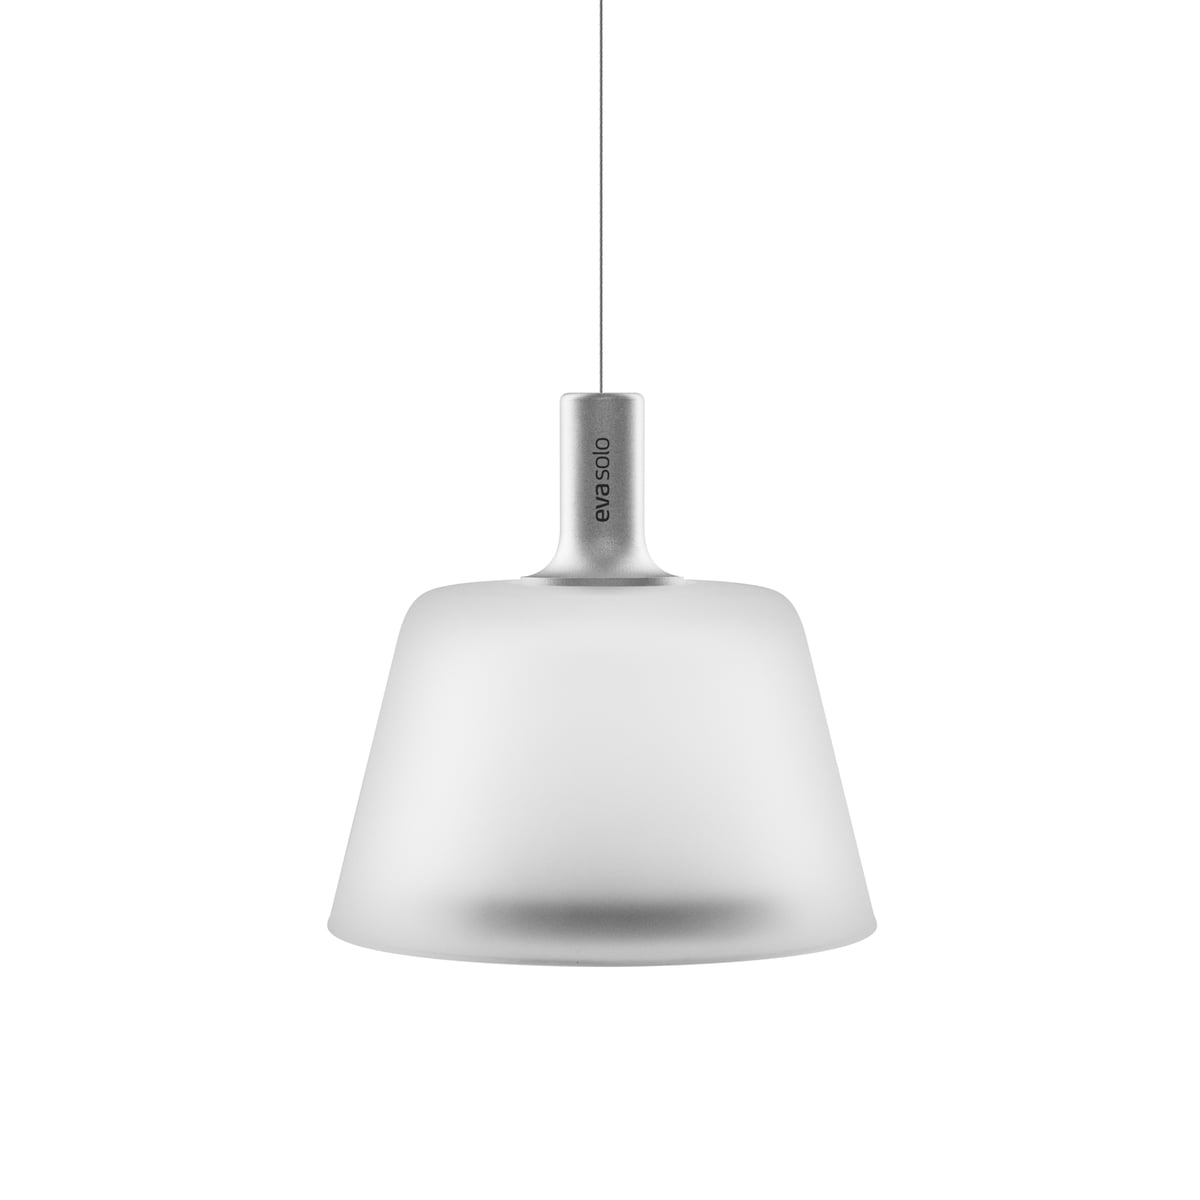 Suspension lumineuse sunlight par eva solo for Suspension lumineuse